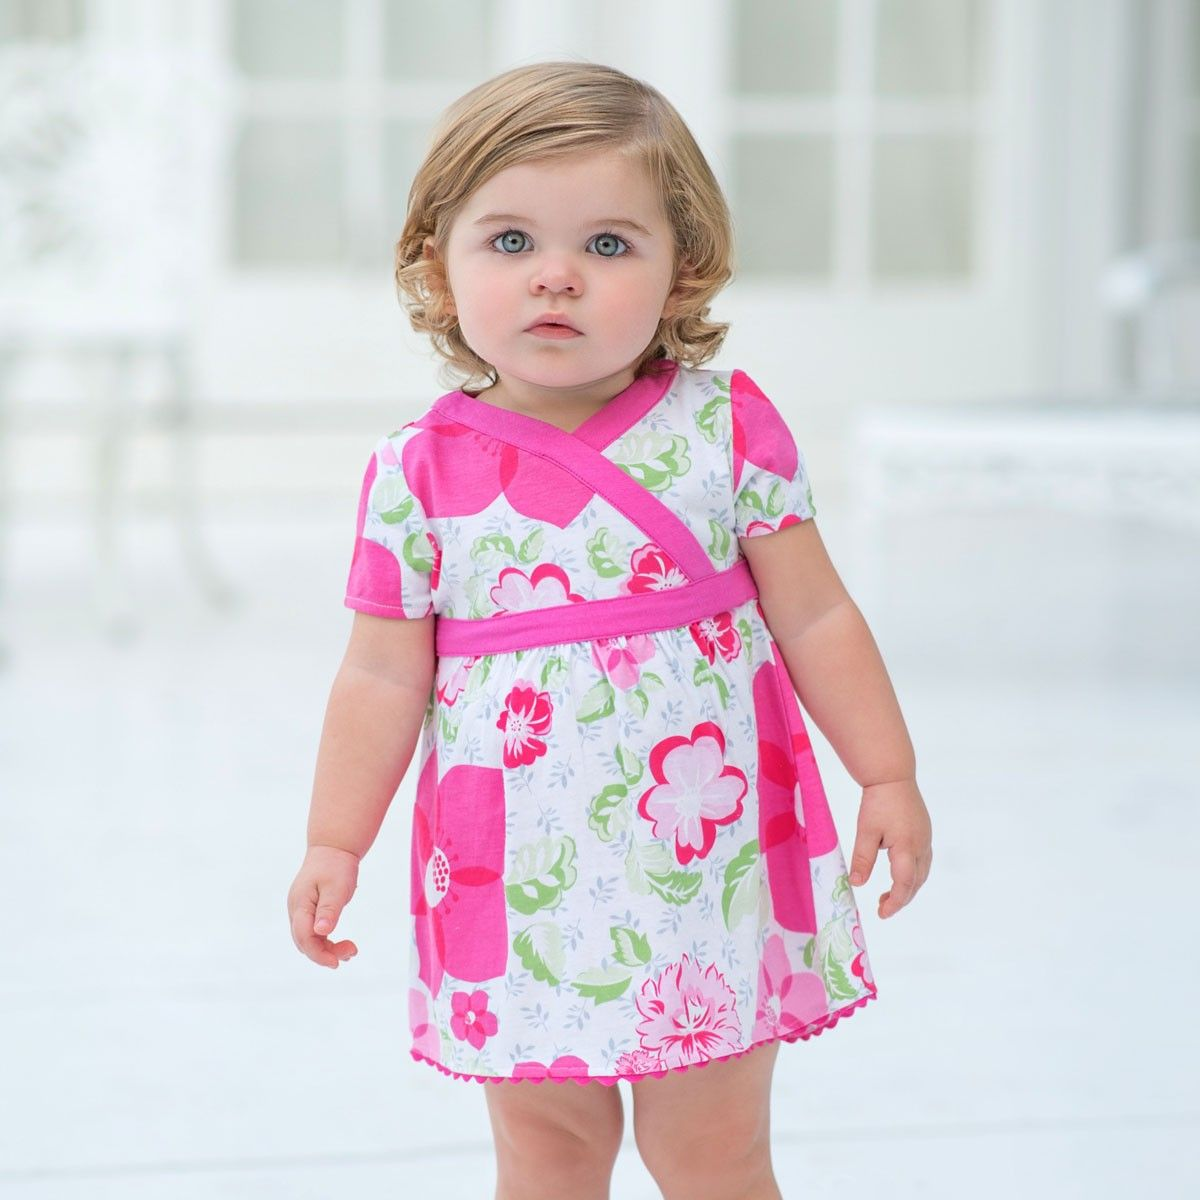 Pink dress for girl  Printed Cotton Baby Dress  Dresses  Girls  Dave Bella Kids